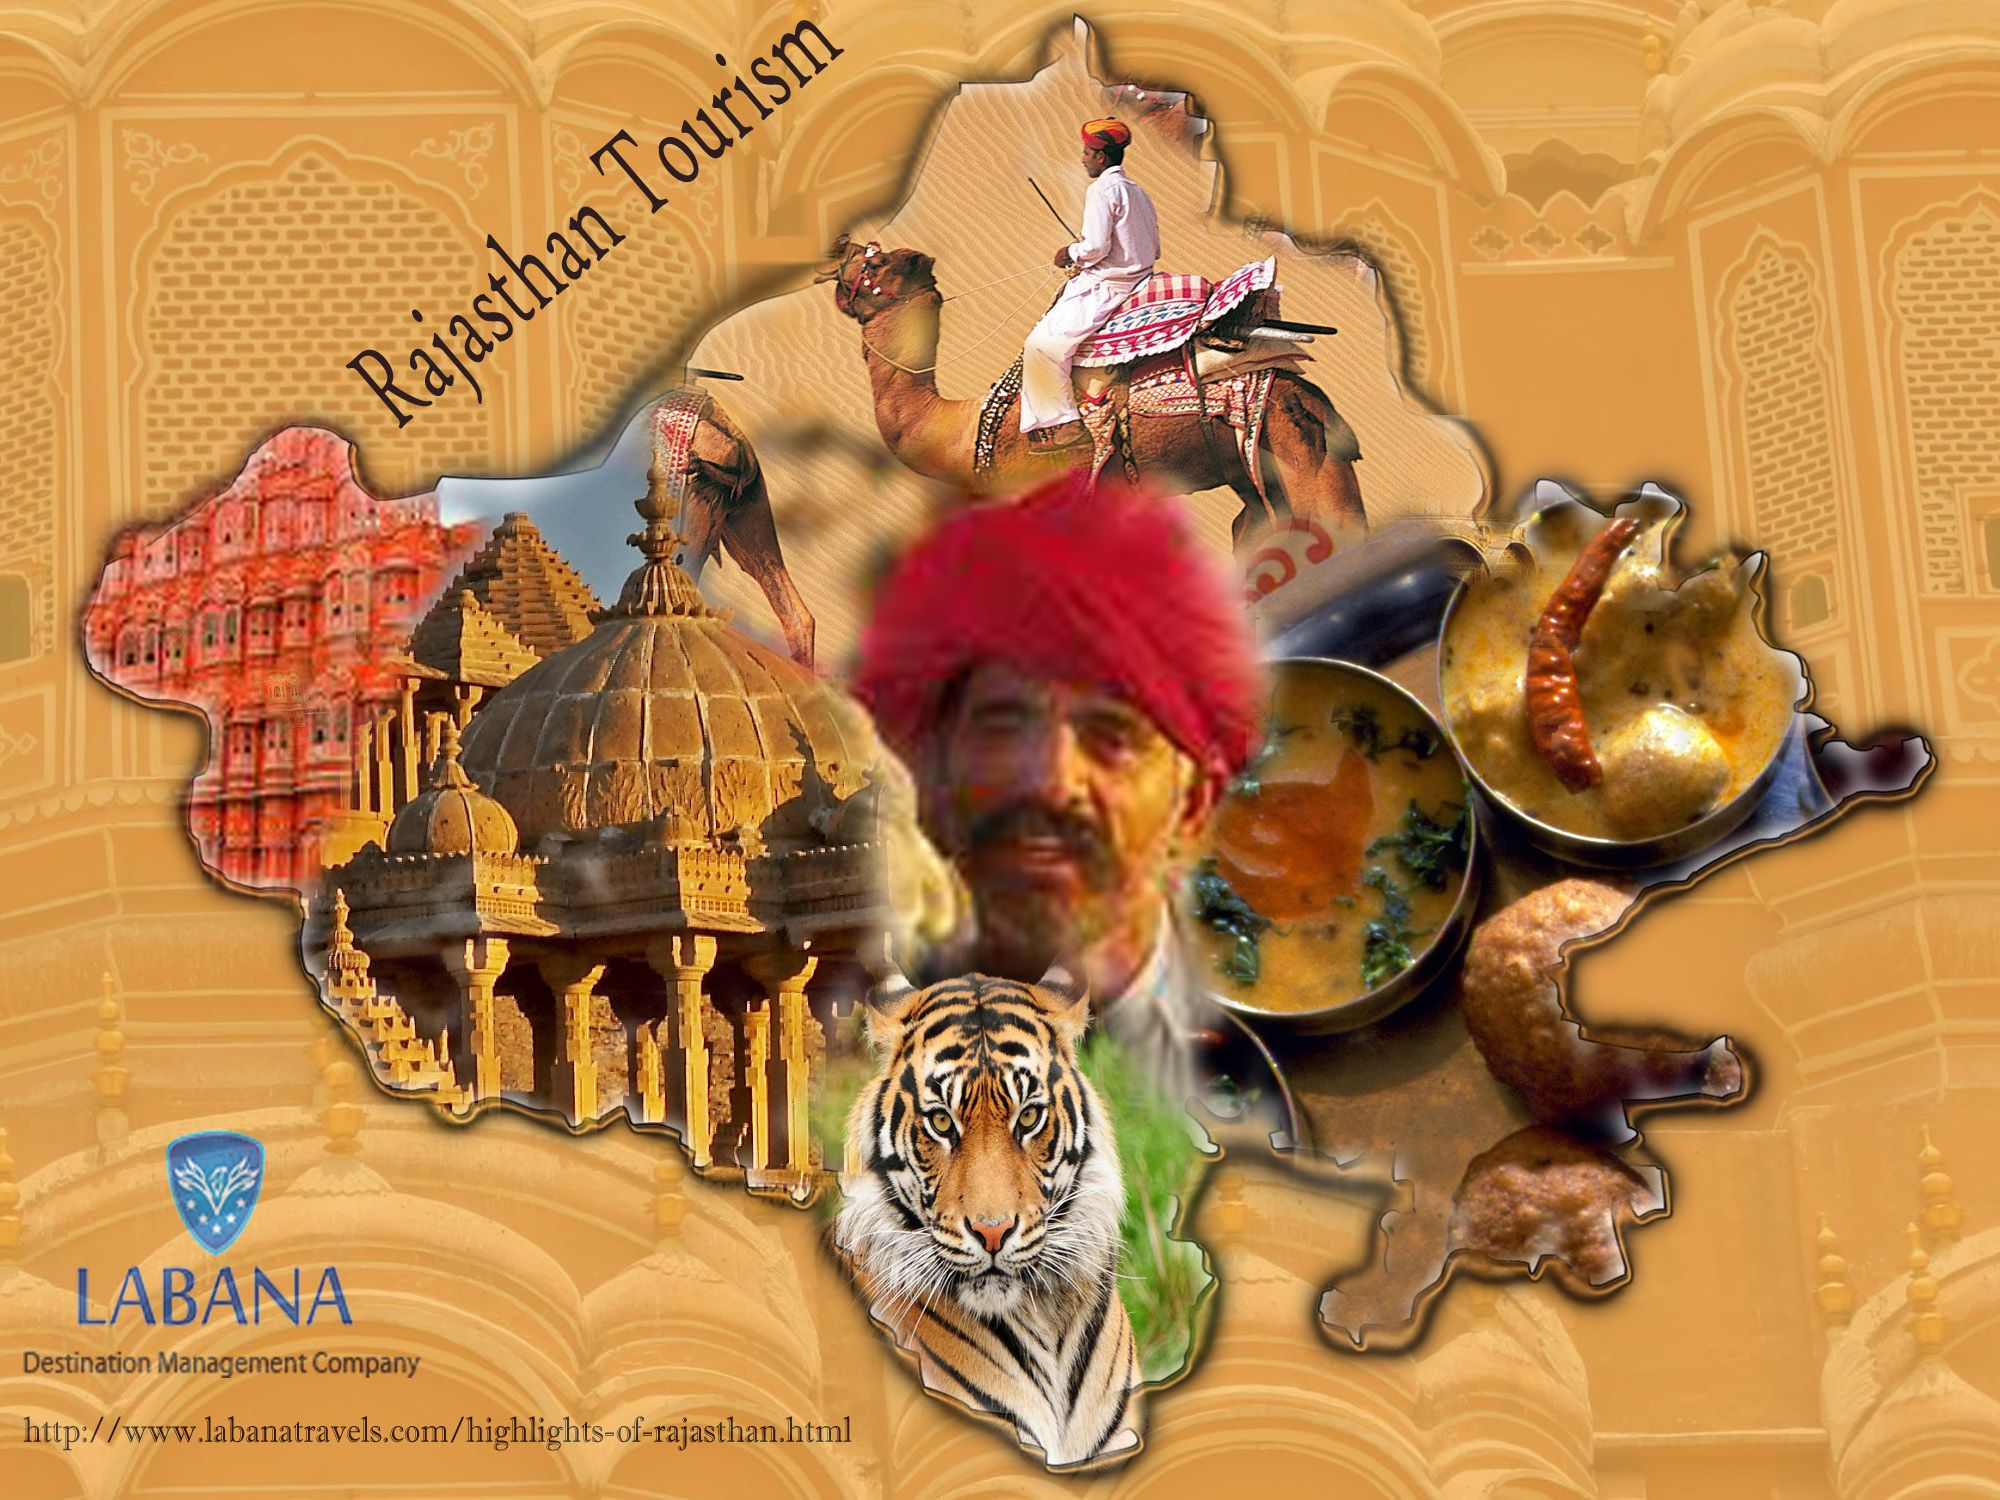 Visit the colorful state of Rajasthan and explore its varied cultures and traditions by visiting the land of kings, Rajasthan and explore the ancient royalty of India with Rajasthan tour packages